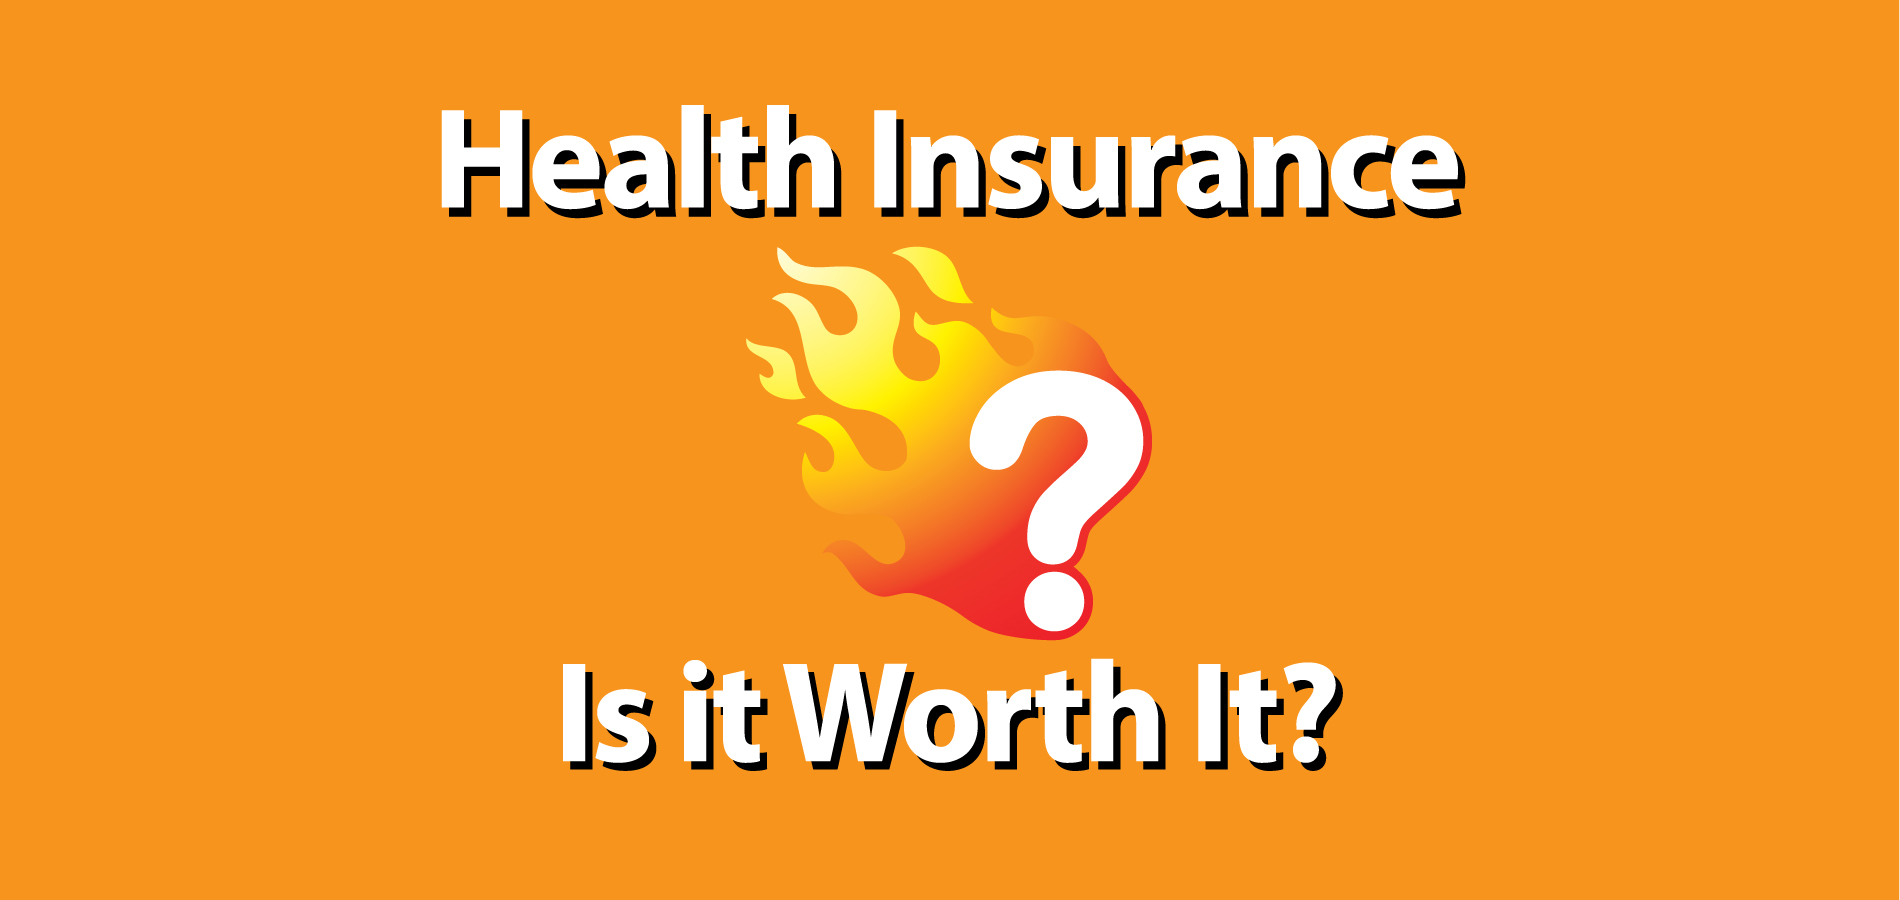 health insurance is it worth it